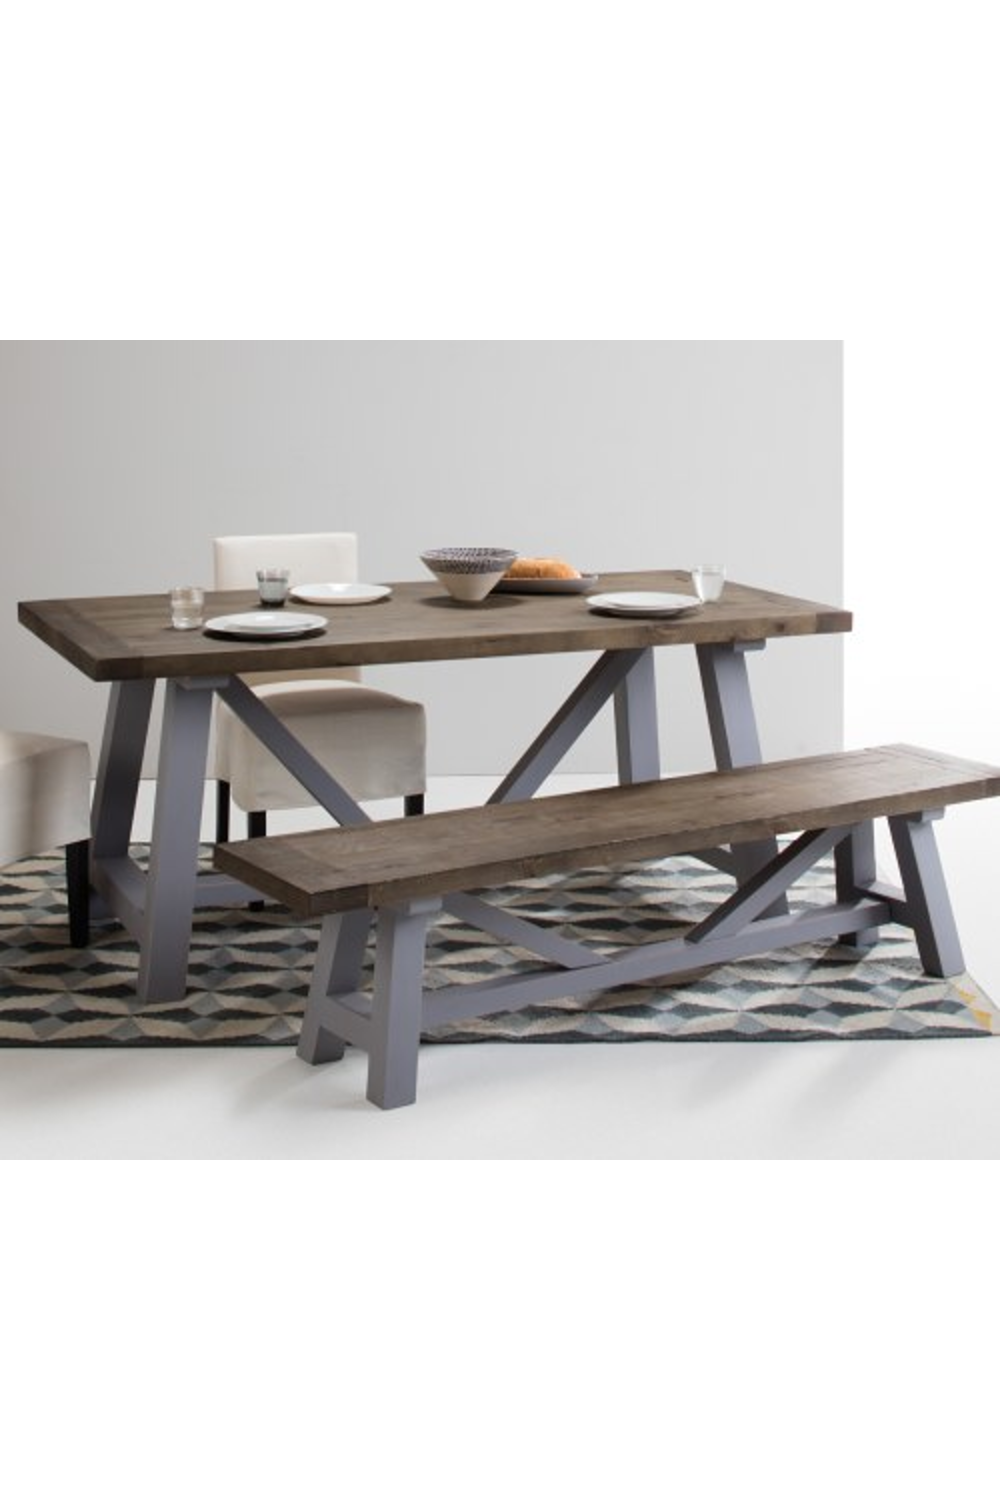 Made Light Wood Dining Table In 2020 Light Wood Dining Table